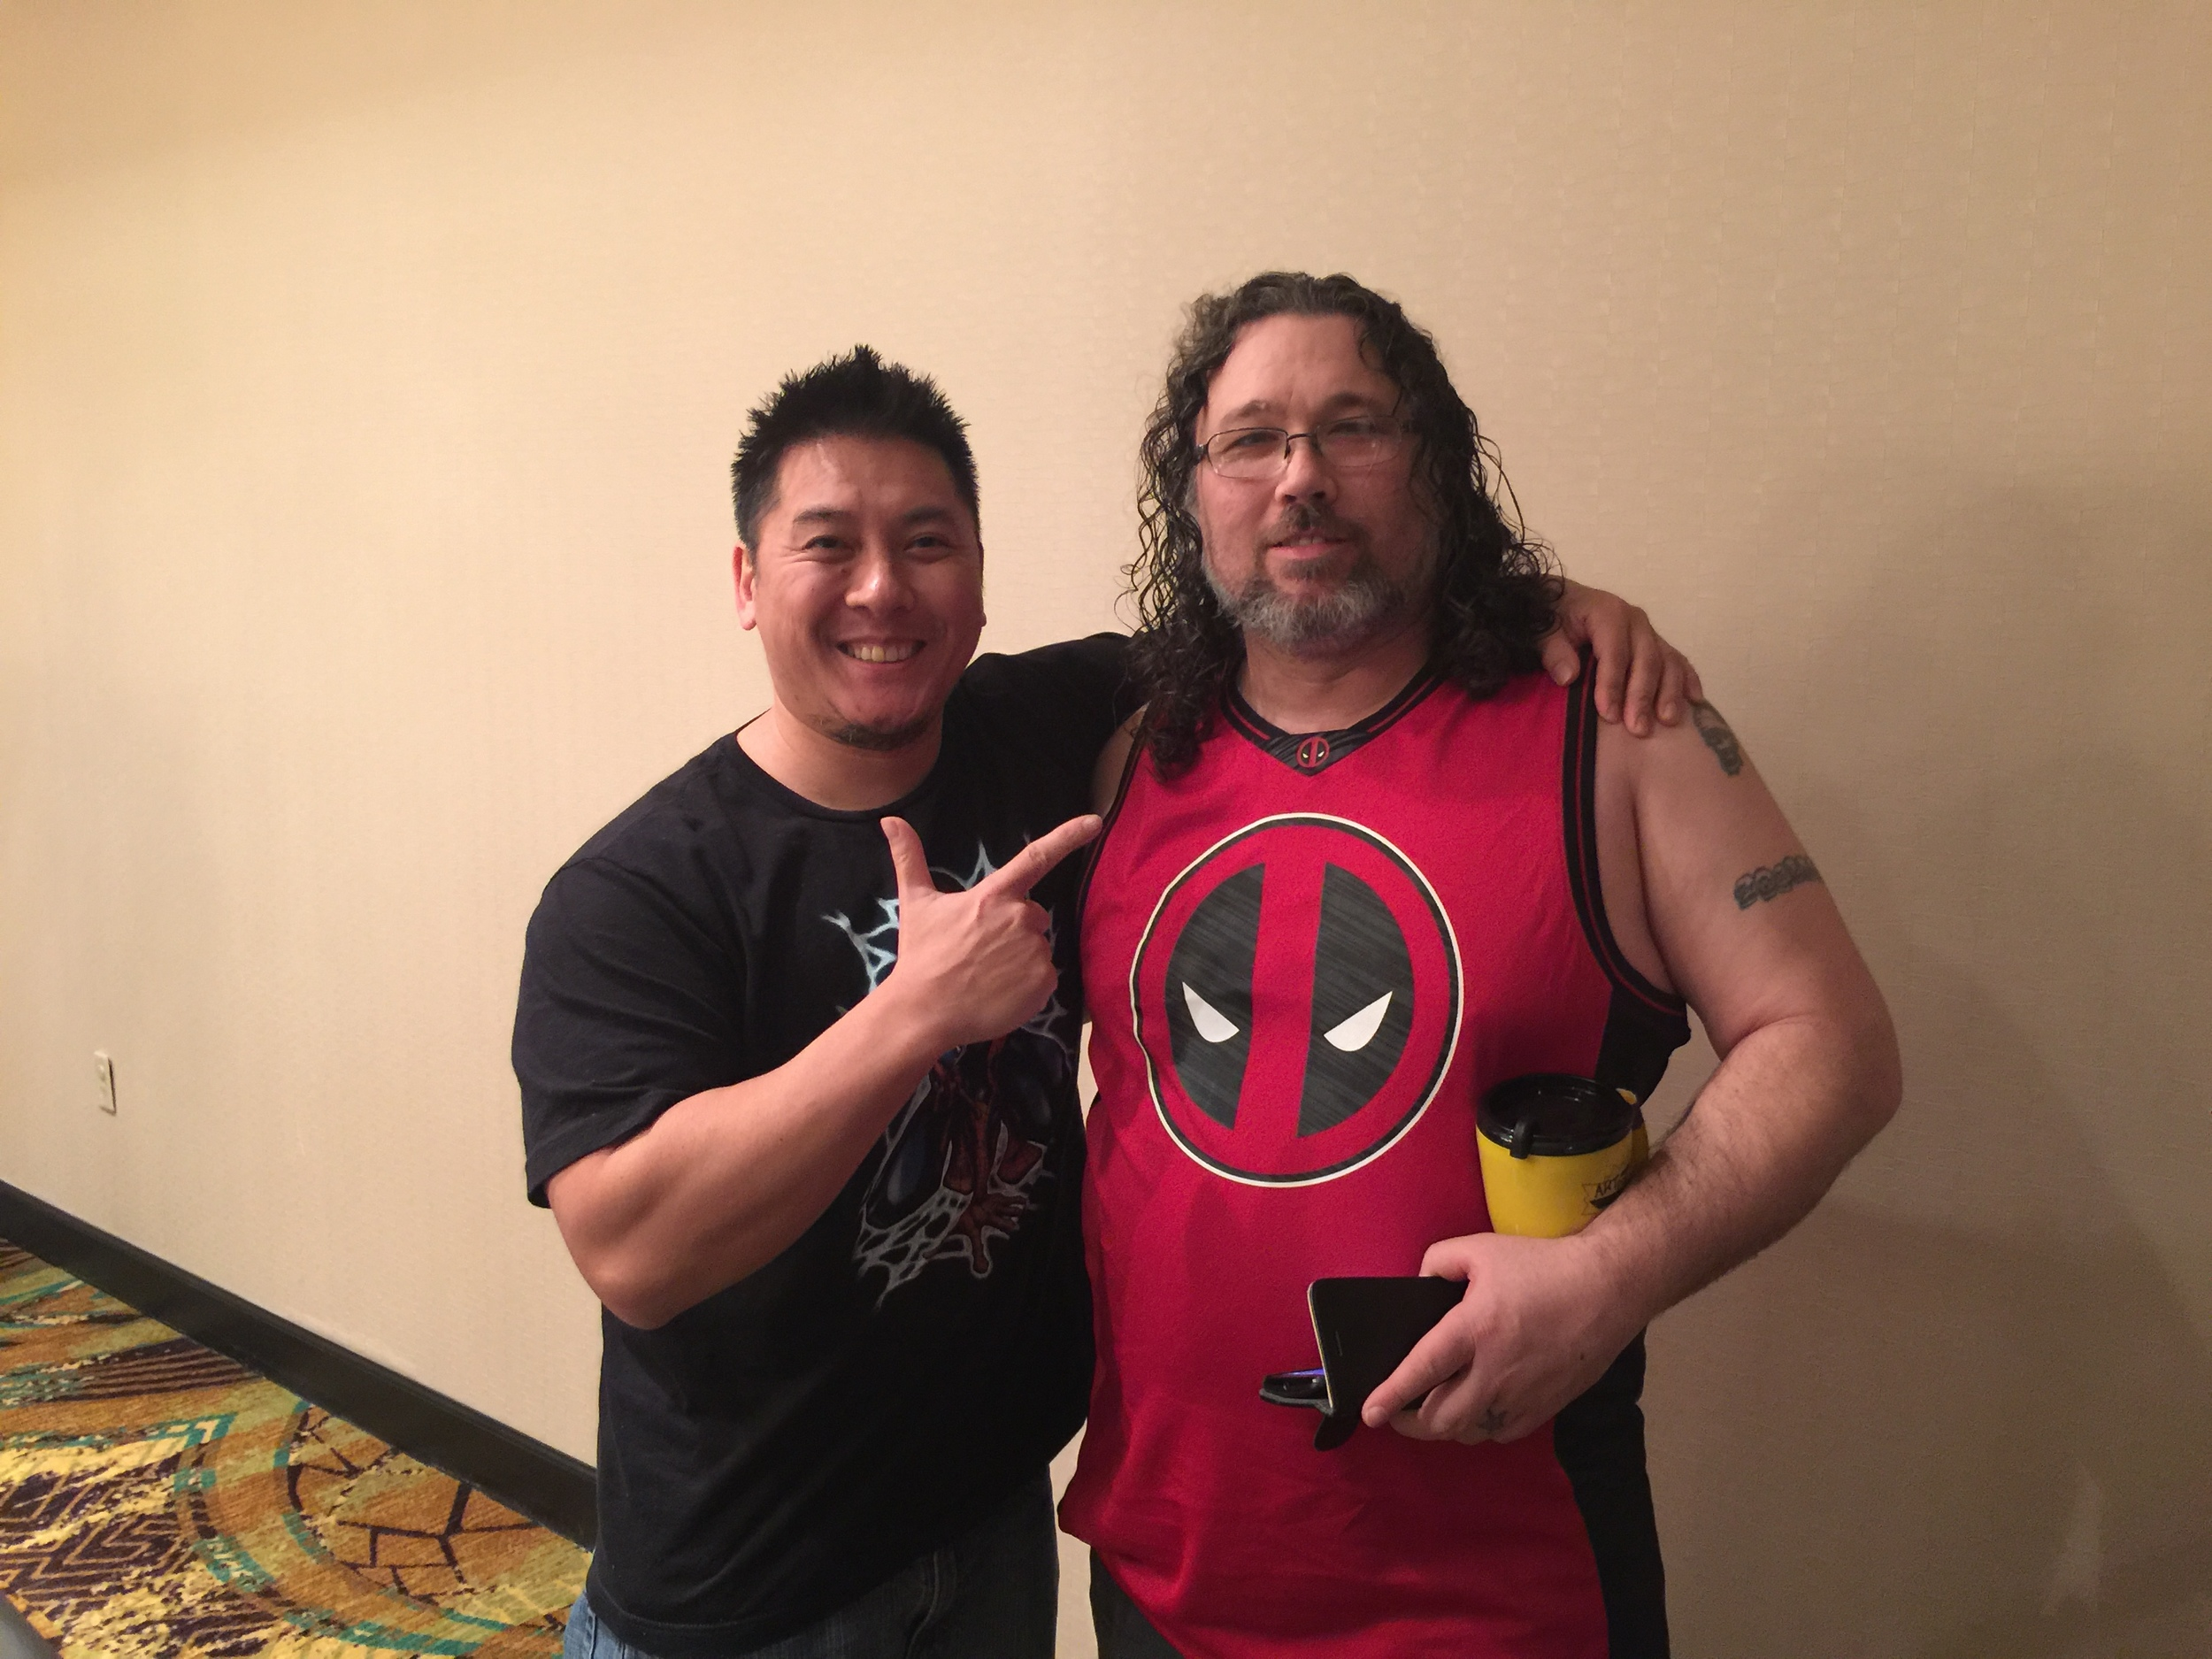 Me with Mike at the VIP party, he also joined us for the Batman V Superman movie that evening!